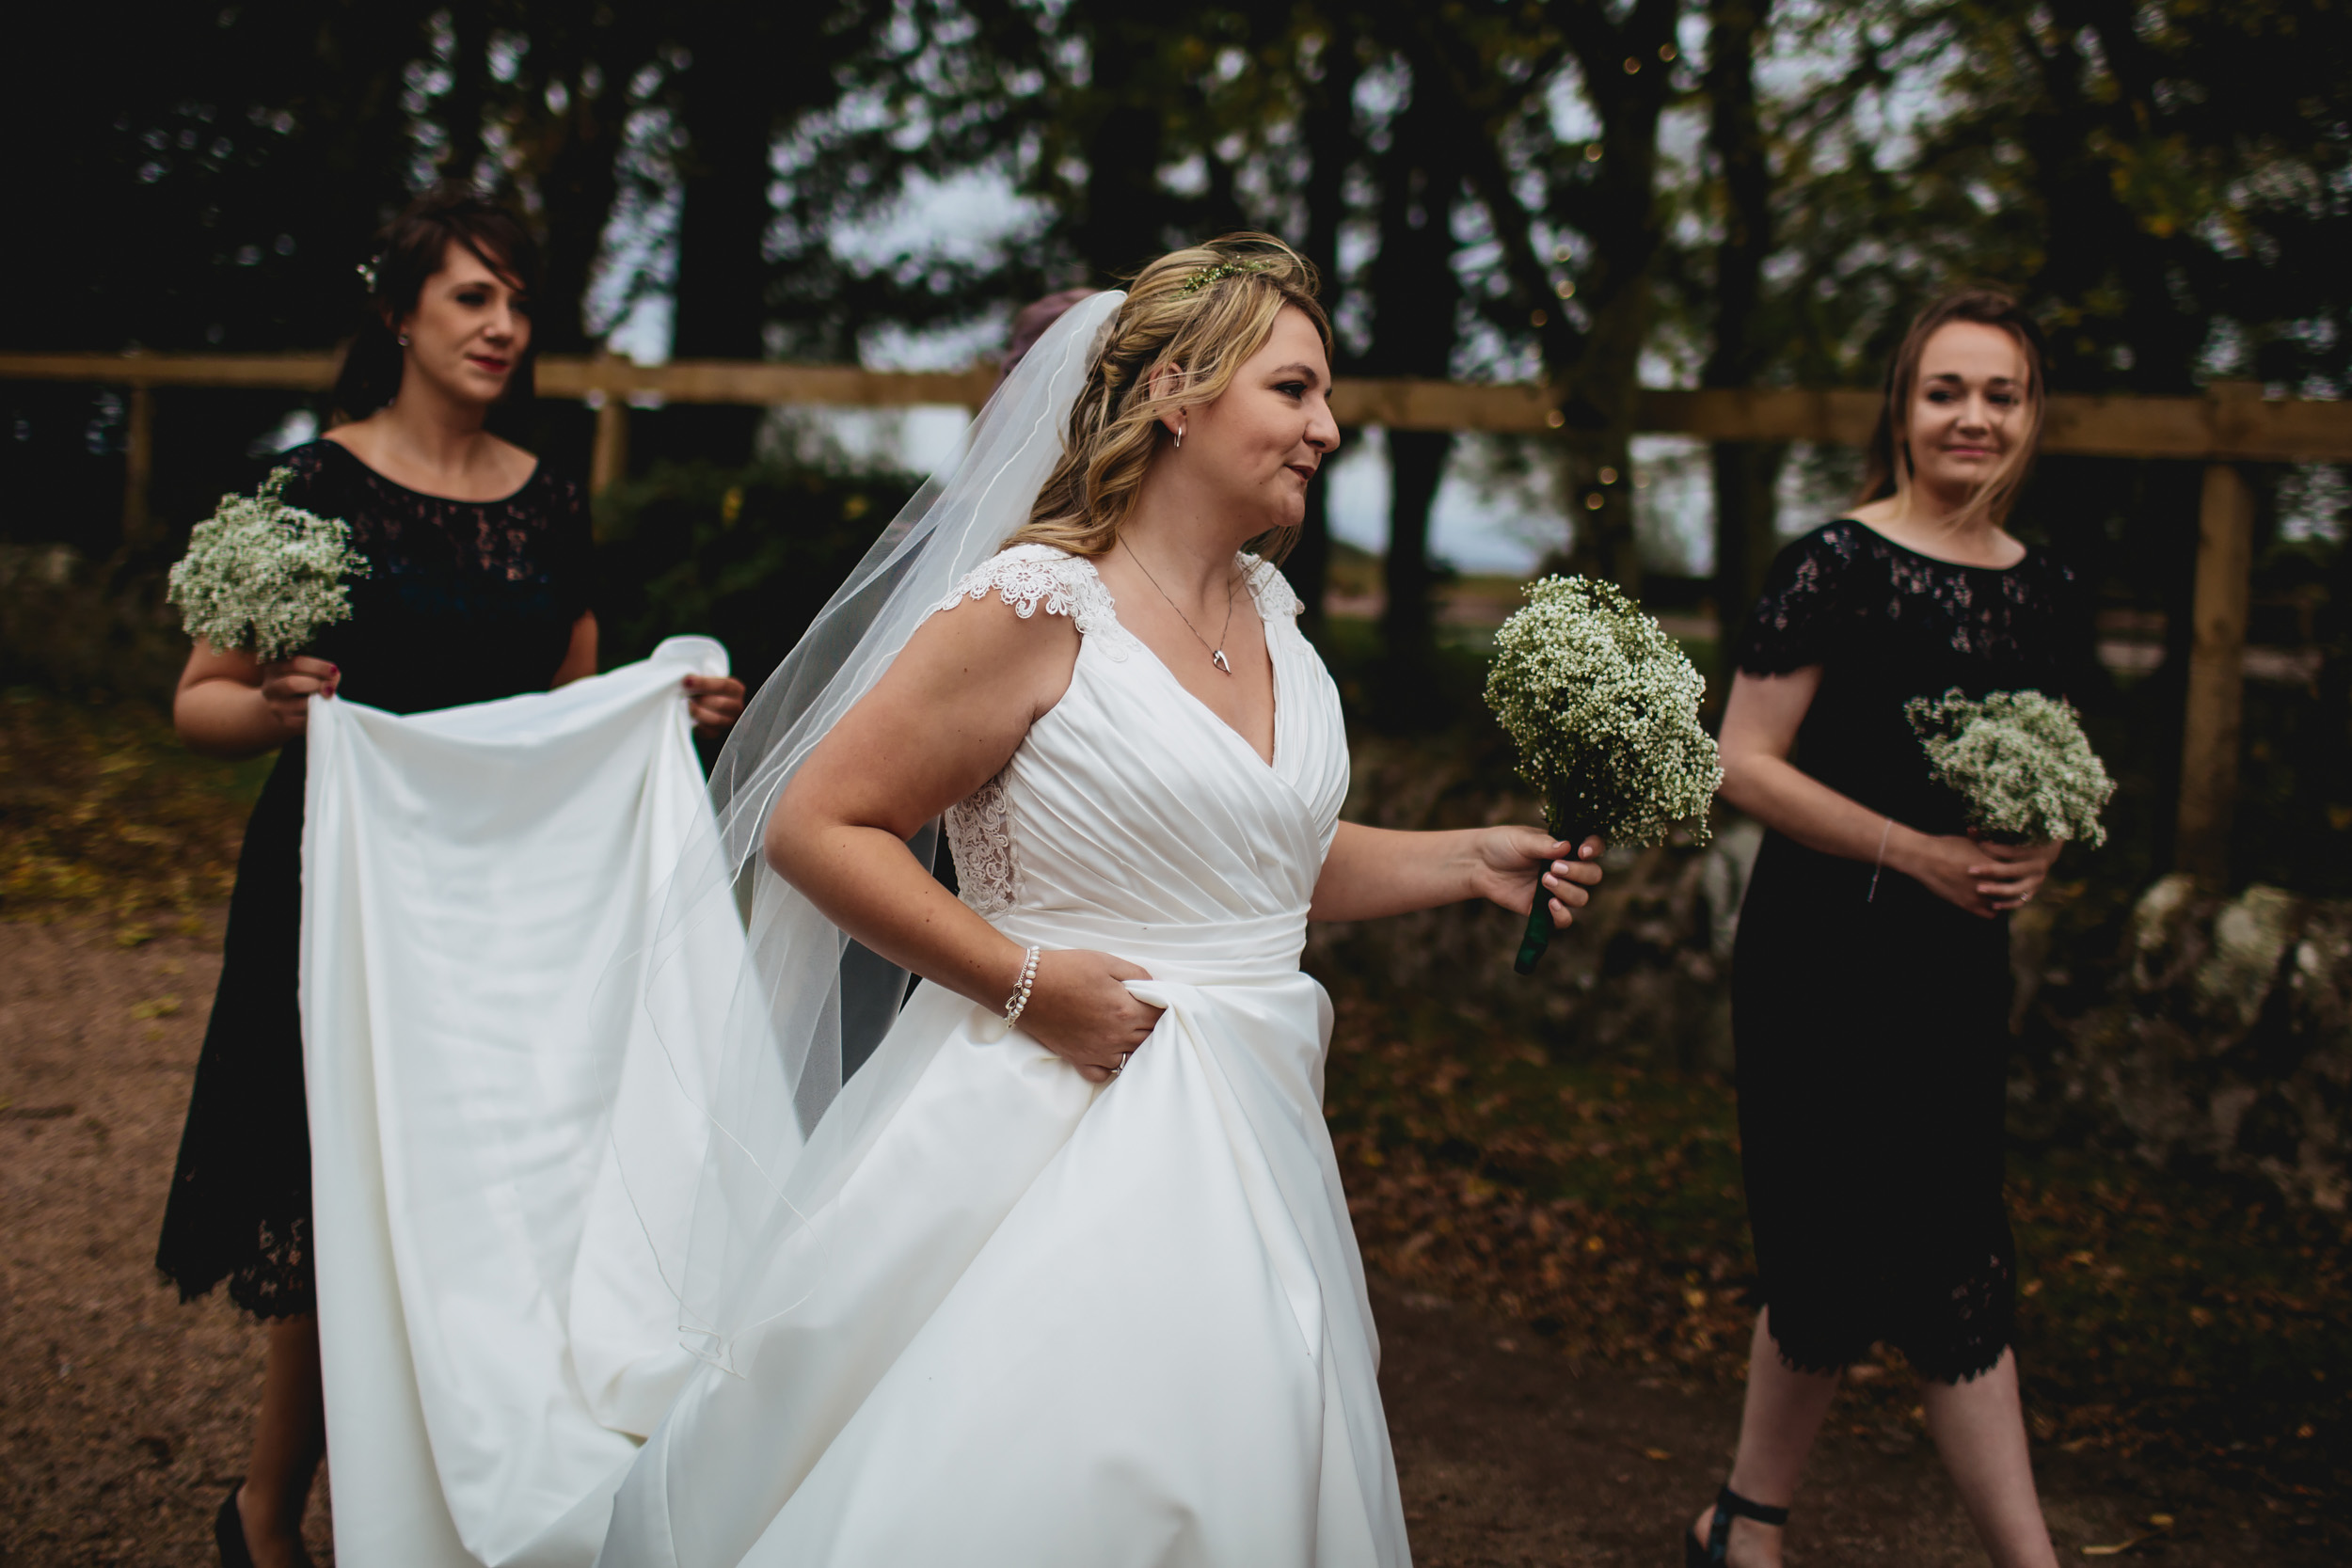 Scottish bride walks to her wedding